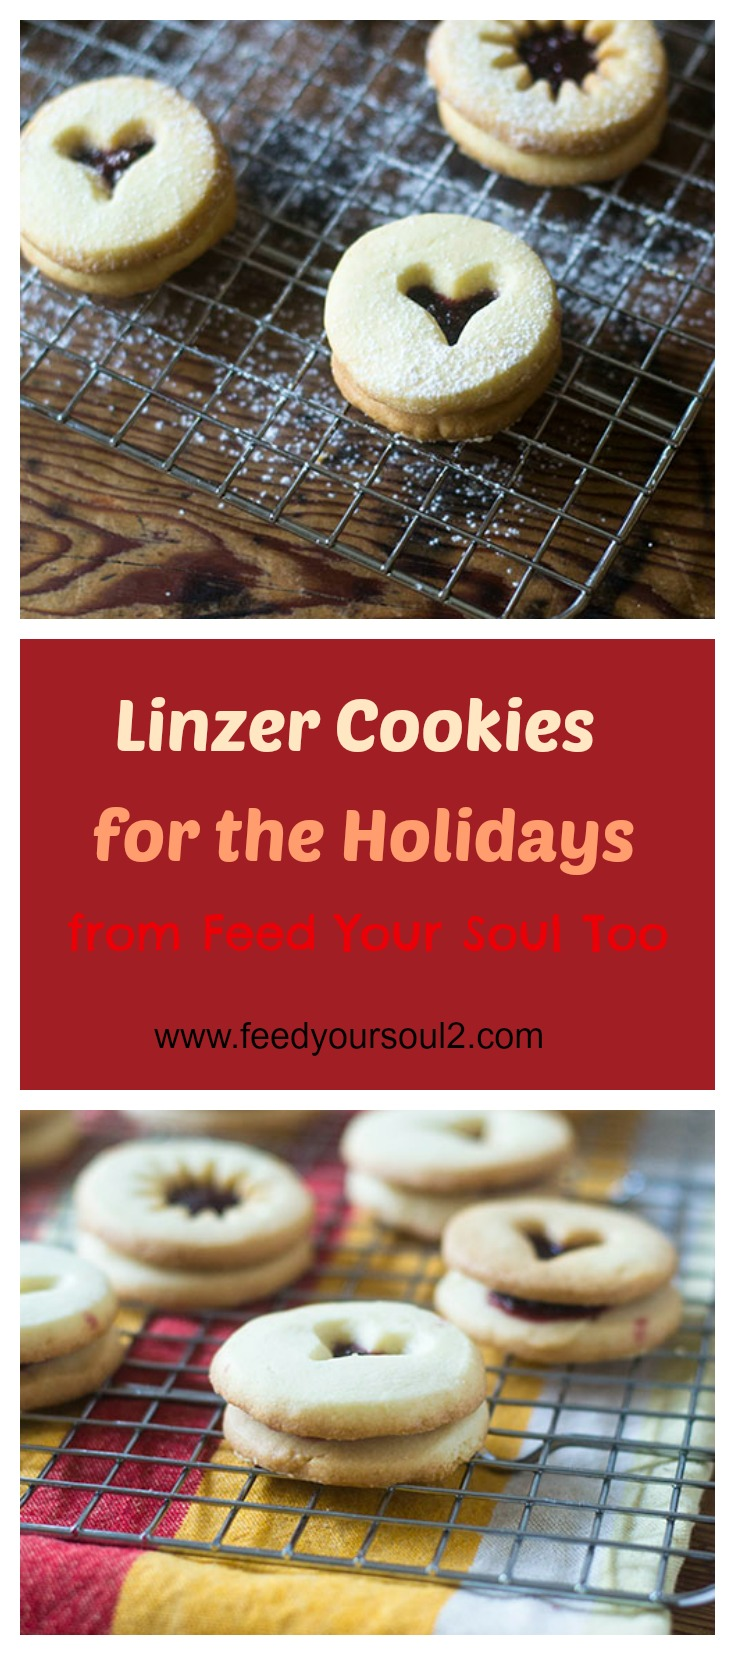 Linzer Cookies for the Holiday #cookies #dessert #Christmas | feedyoursoul2.com""